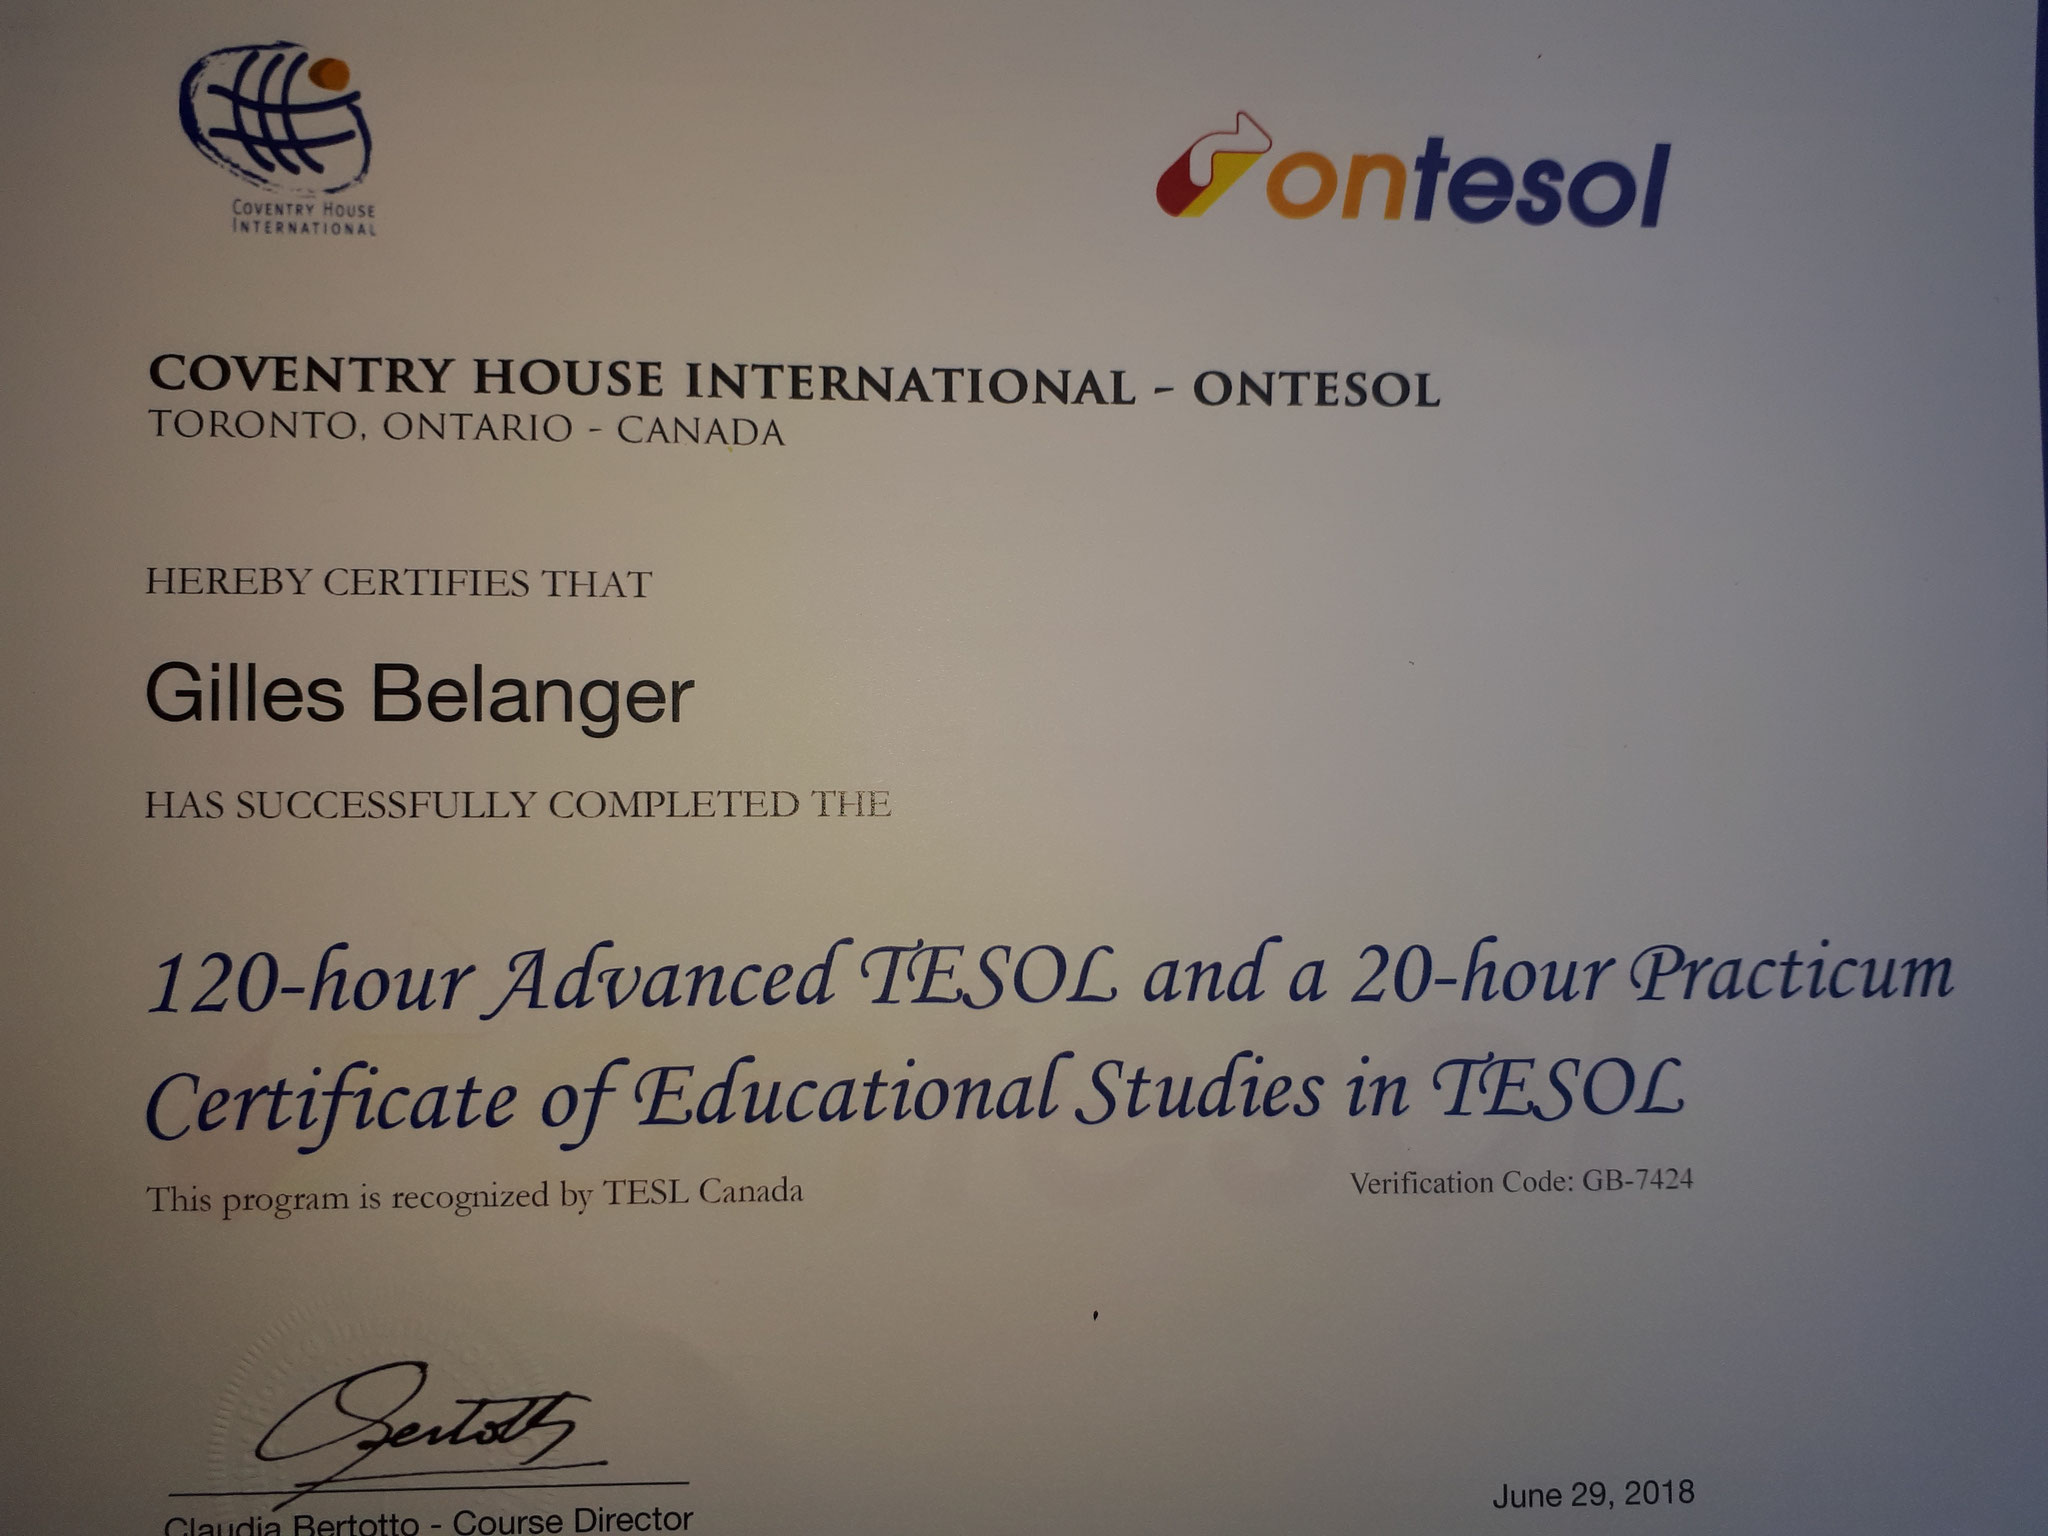 160 hours training on 120-hour Advanced TESOL plus 20-hour practicum and, IELTS Specialist courses; TESL Canada Federation accreditation